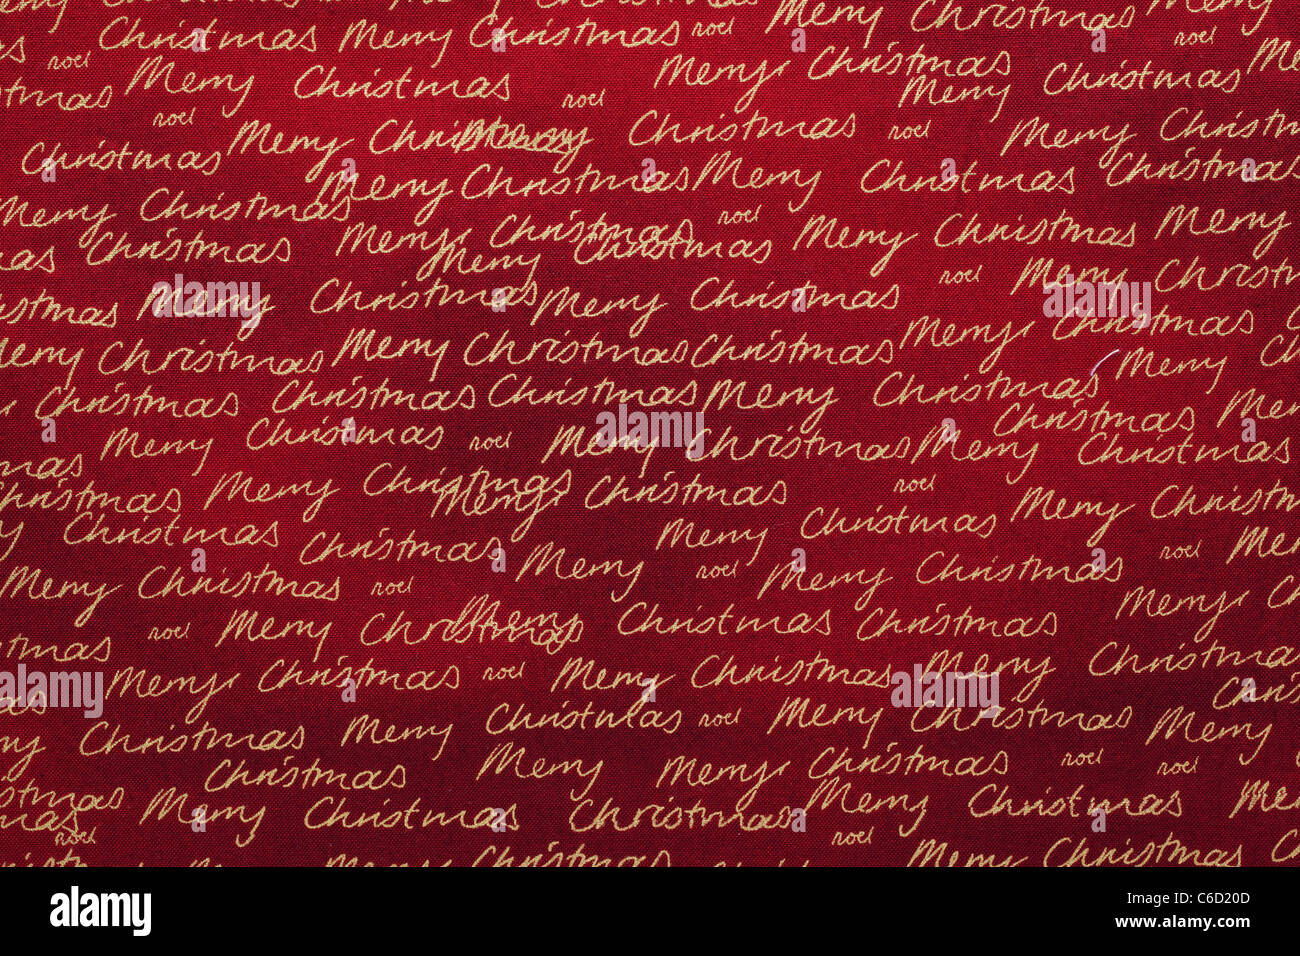 Golden Merry Christmas pattern fabric background. - Stock Image